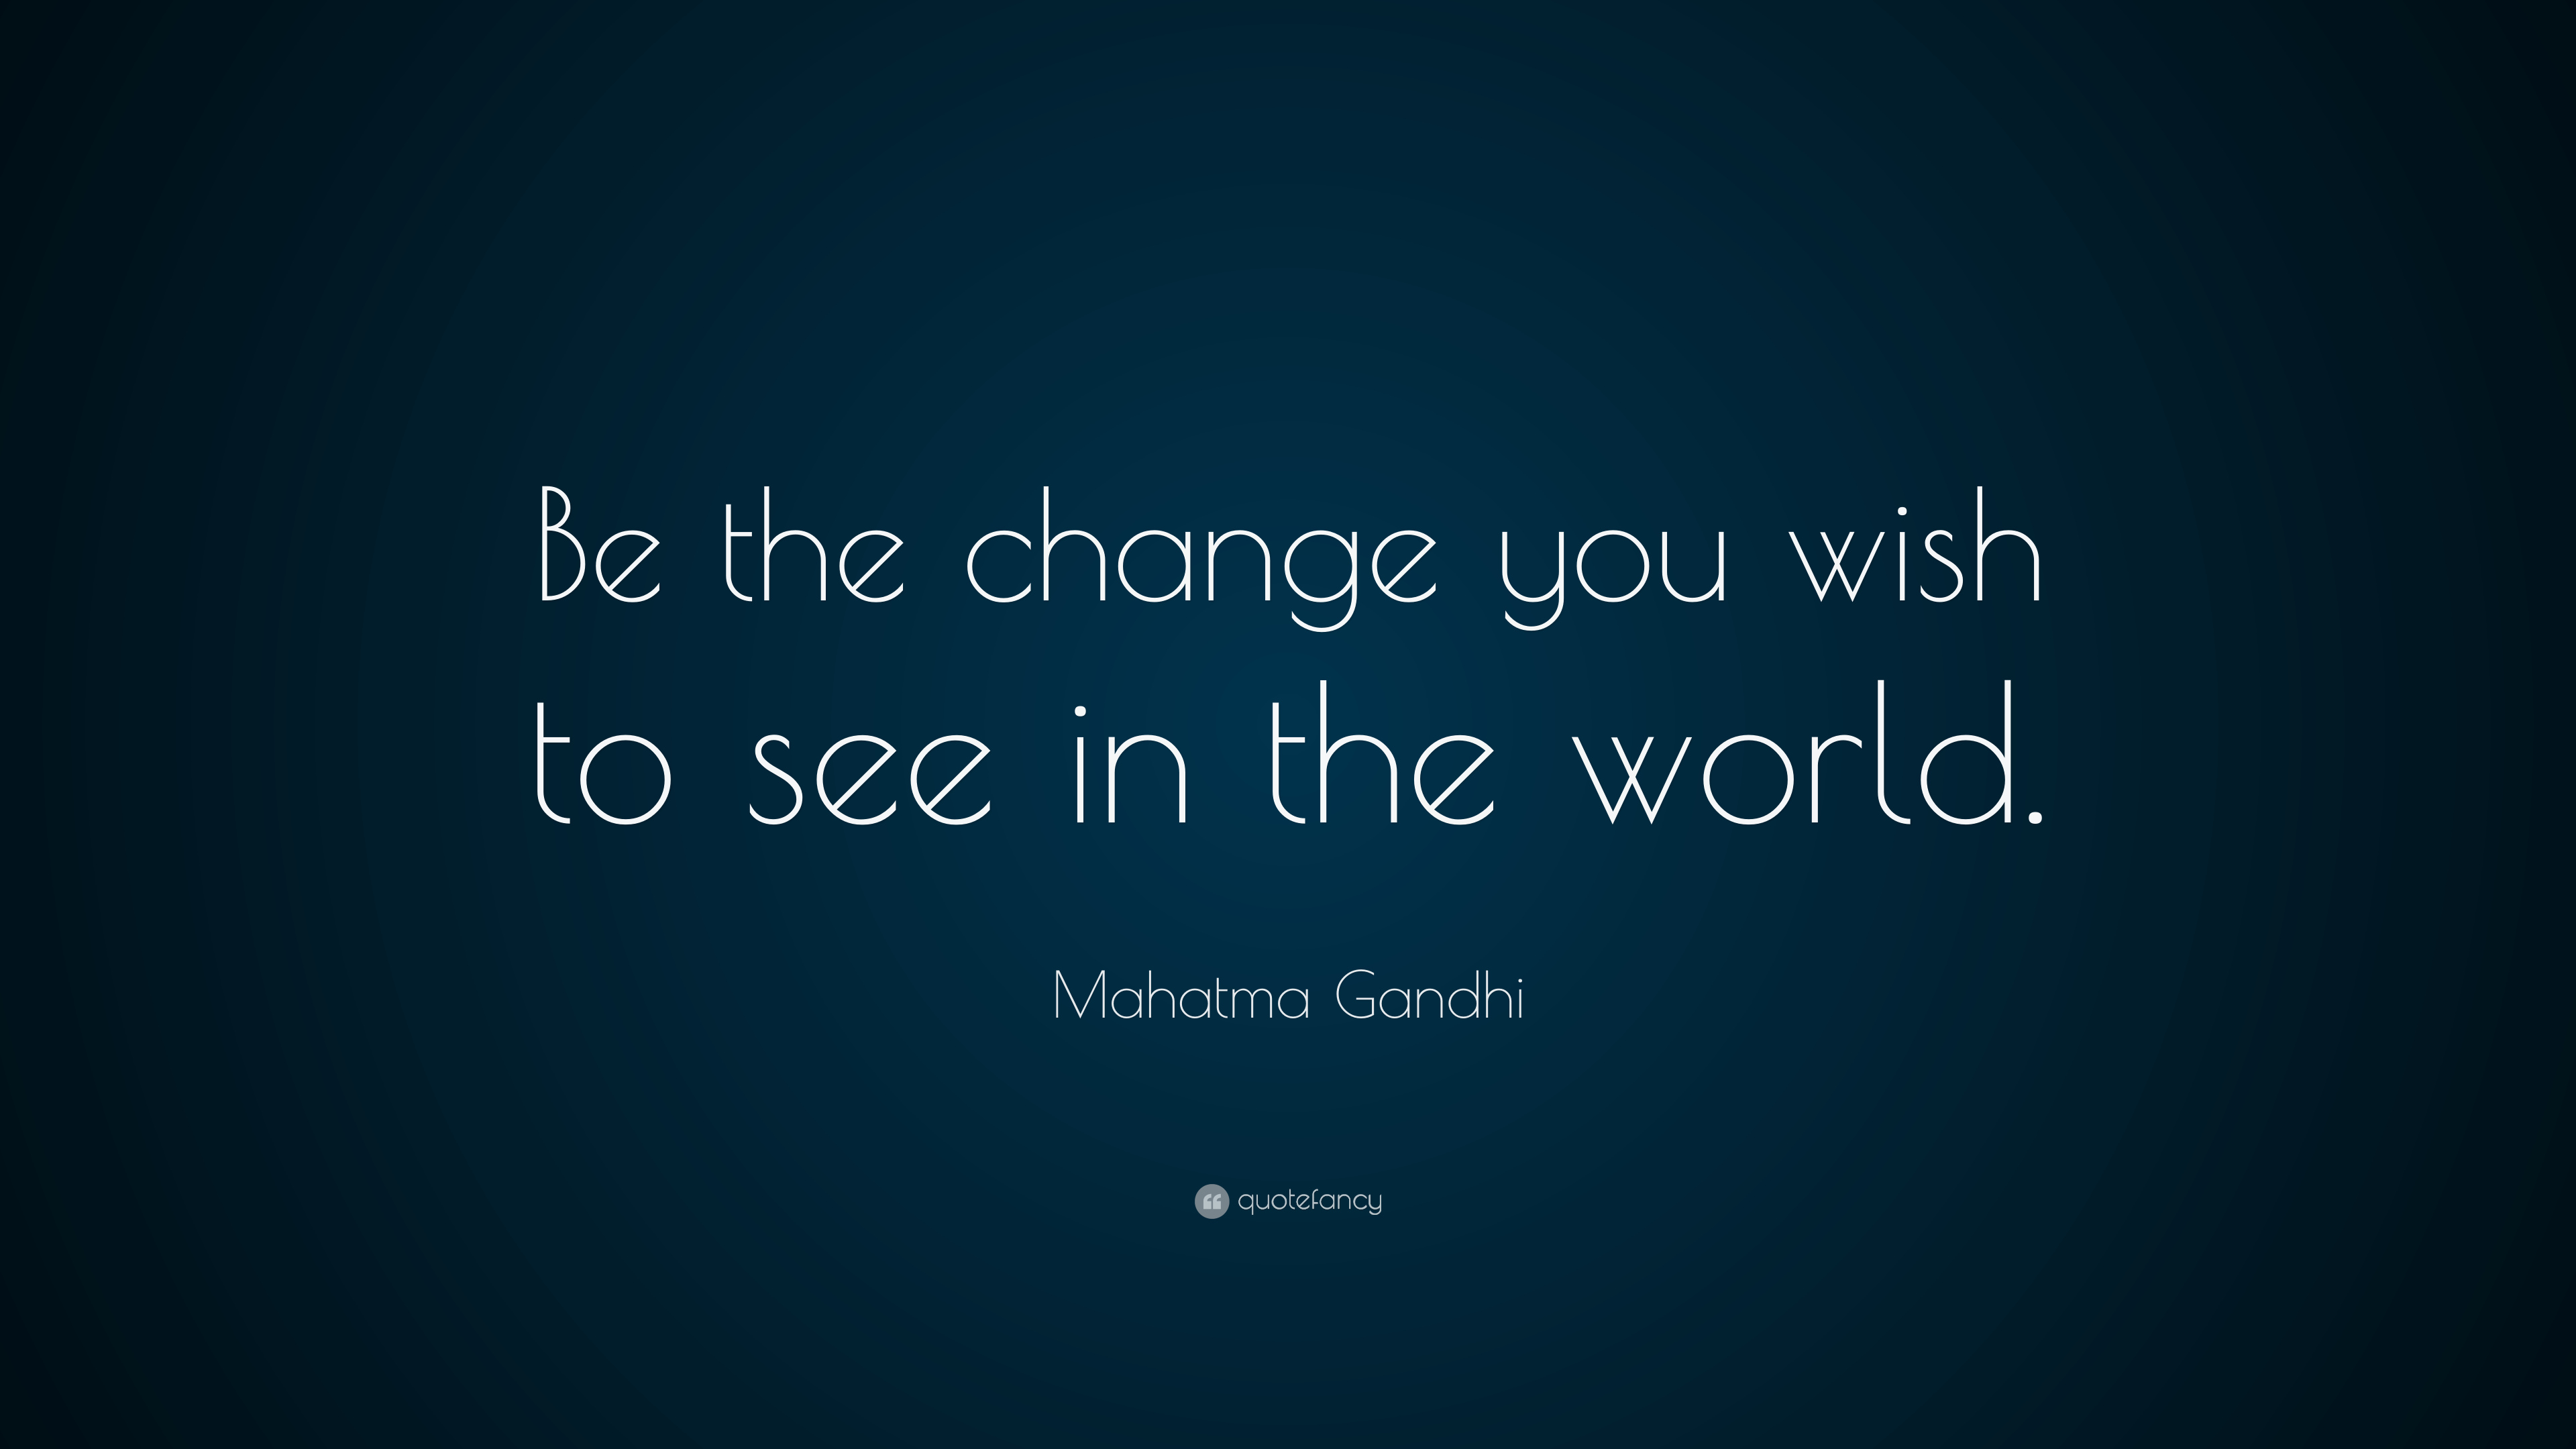 mahatma gandhi quote be the change that you wish to see in the world